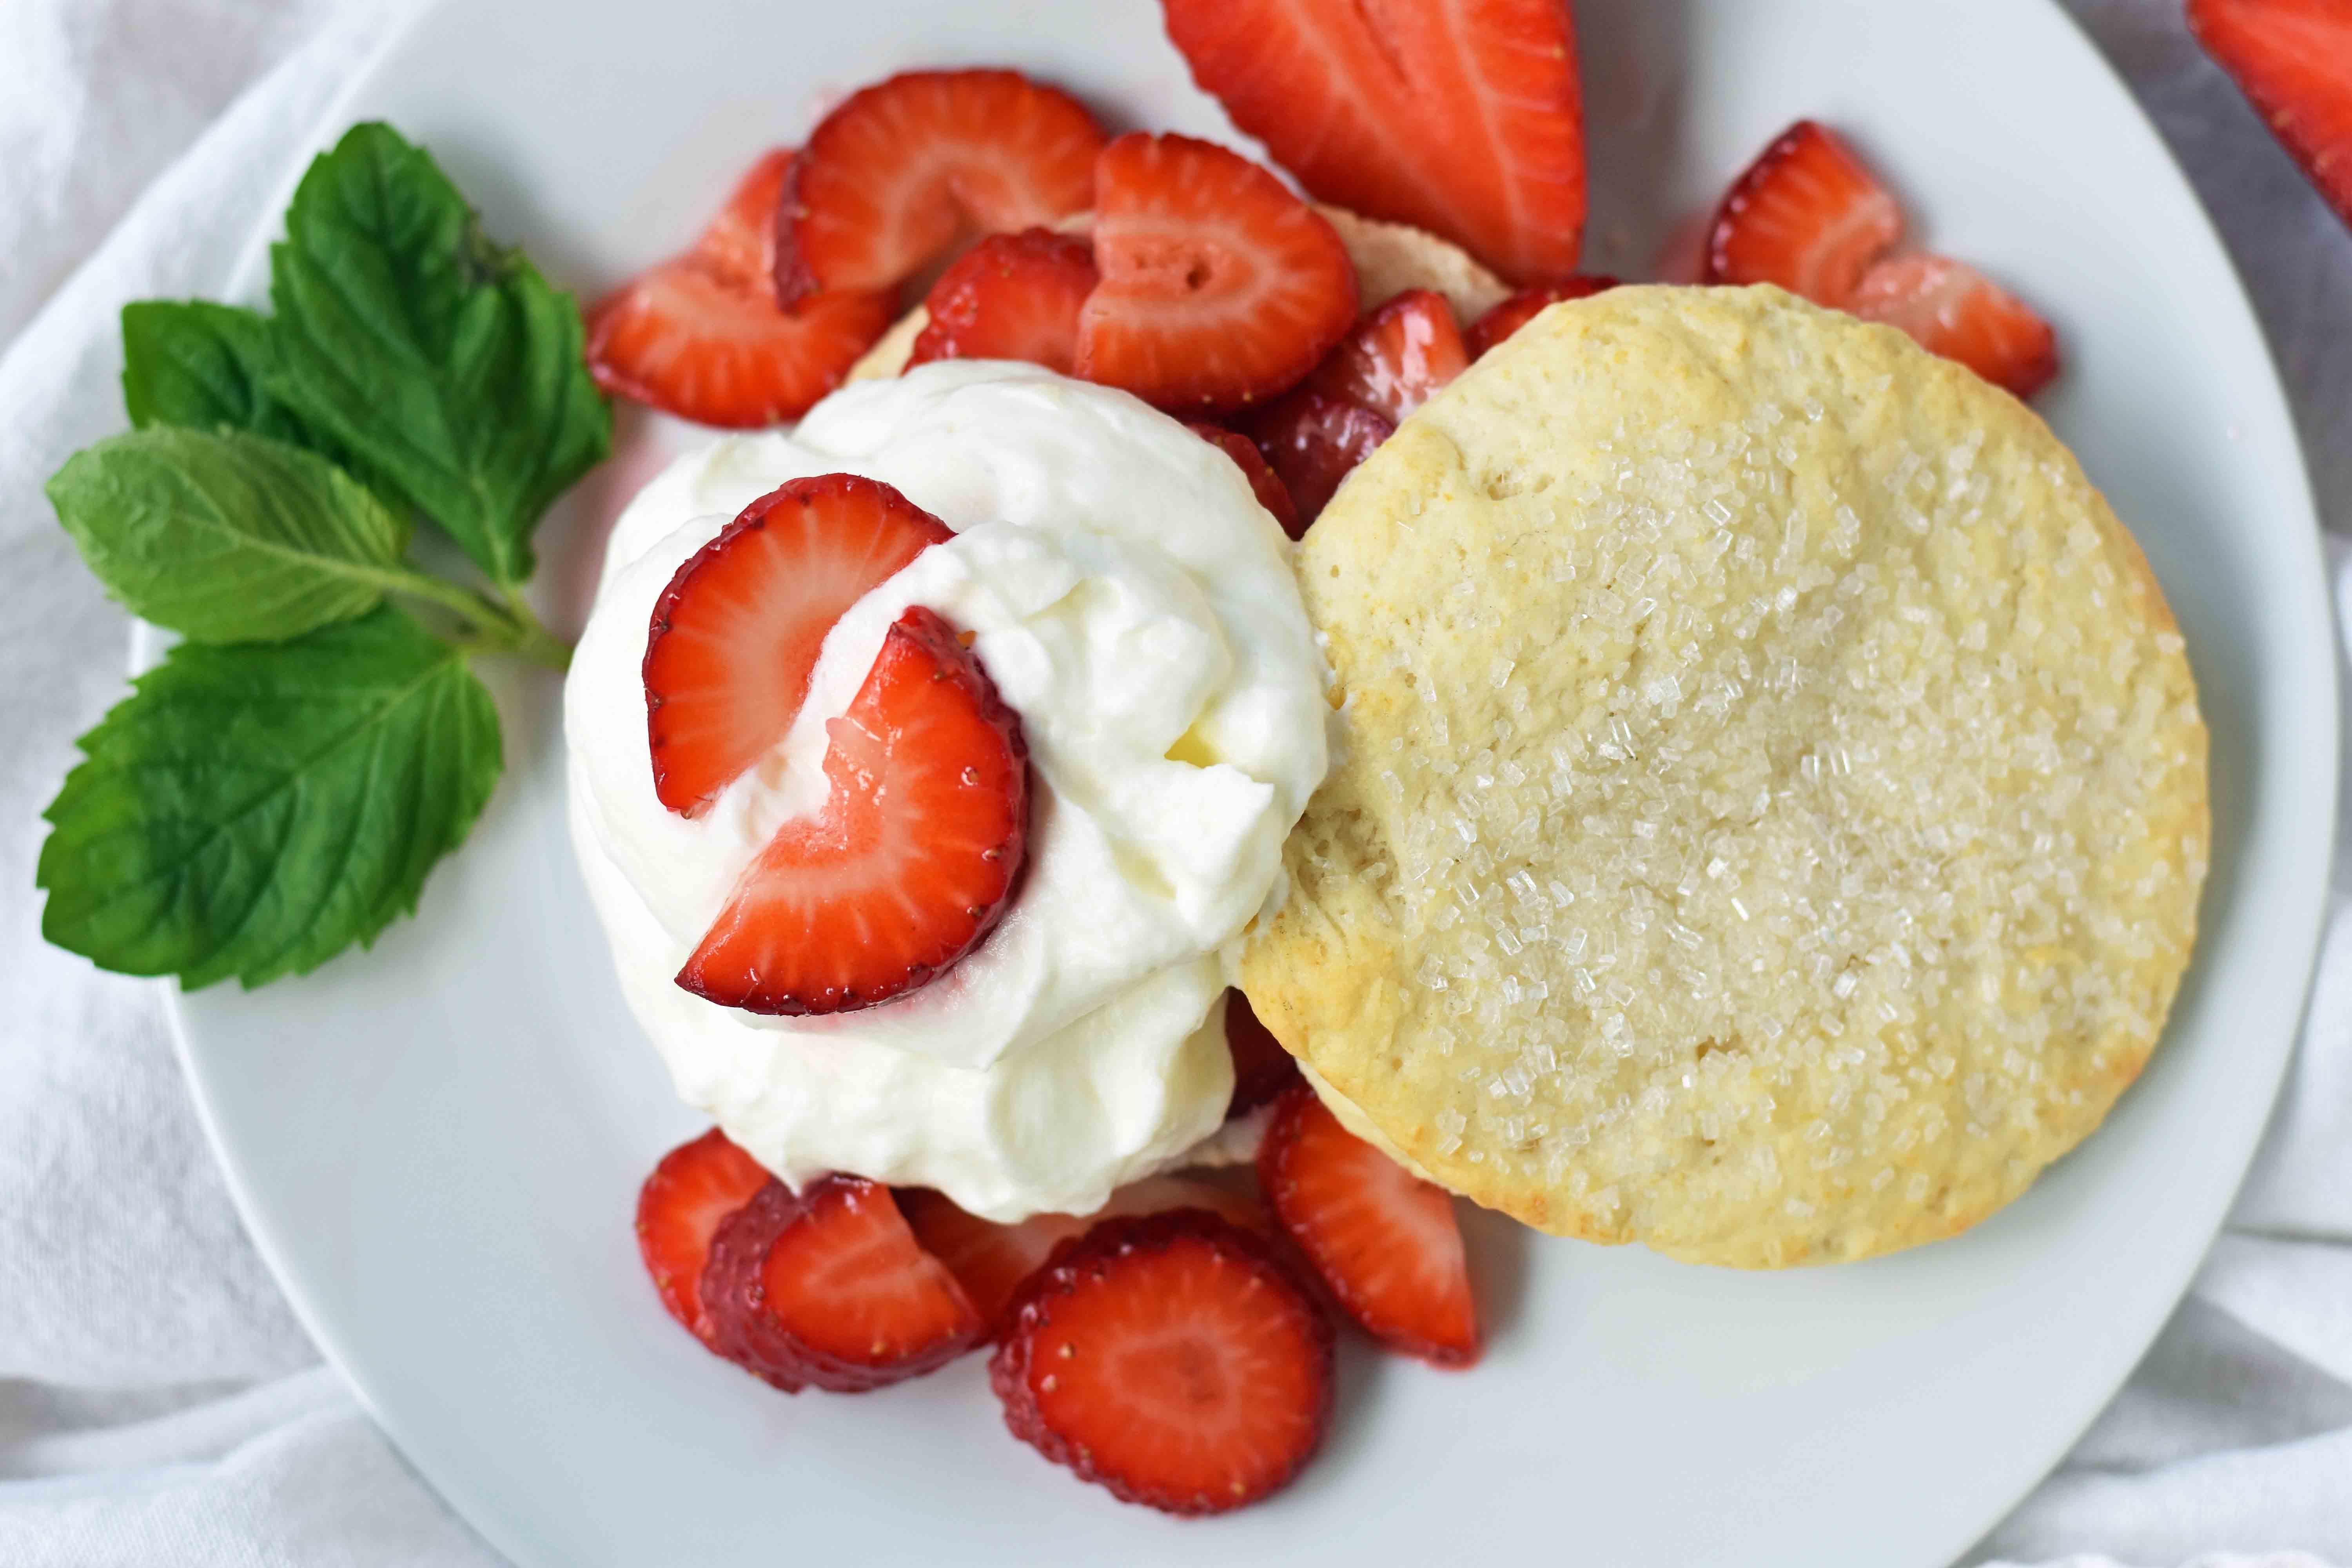 Strawberry Shortcake with Sweet Biscuits, Sugared Strawberries, and Homemade Sweetened Whipped Cream. The BEST Strawberry Shortcake Recipe. A Southern classic Strawberry Shortcake with biscuits. www.modernhoney.com